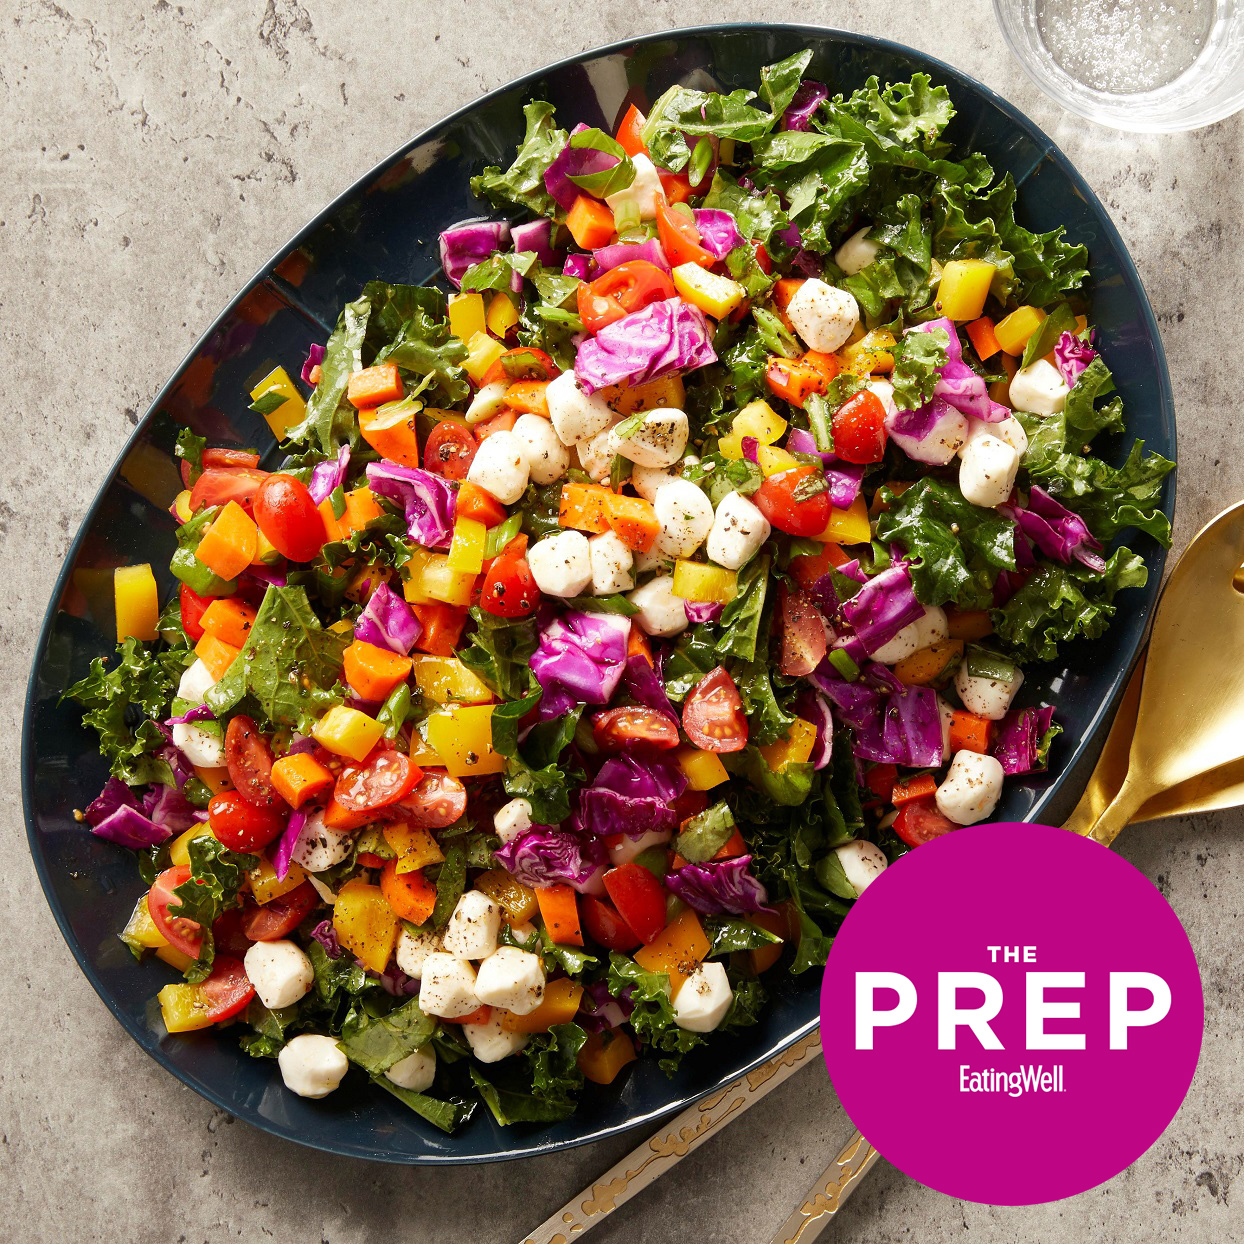 ThePrep: Light & Easy No-Cook Dinners for Hot Nights